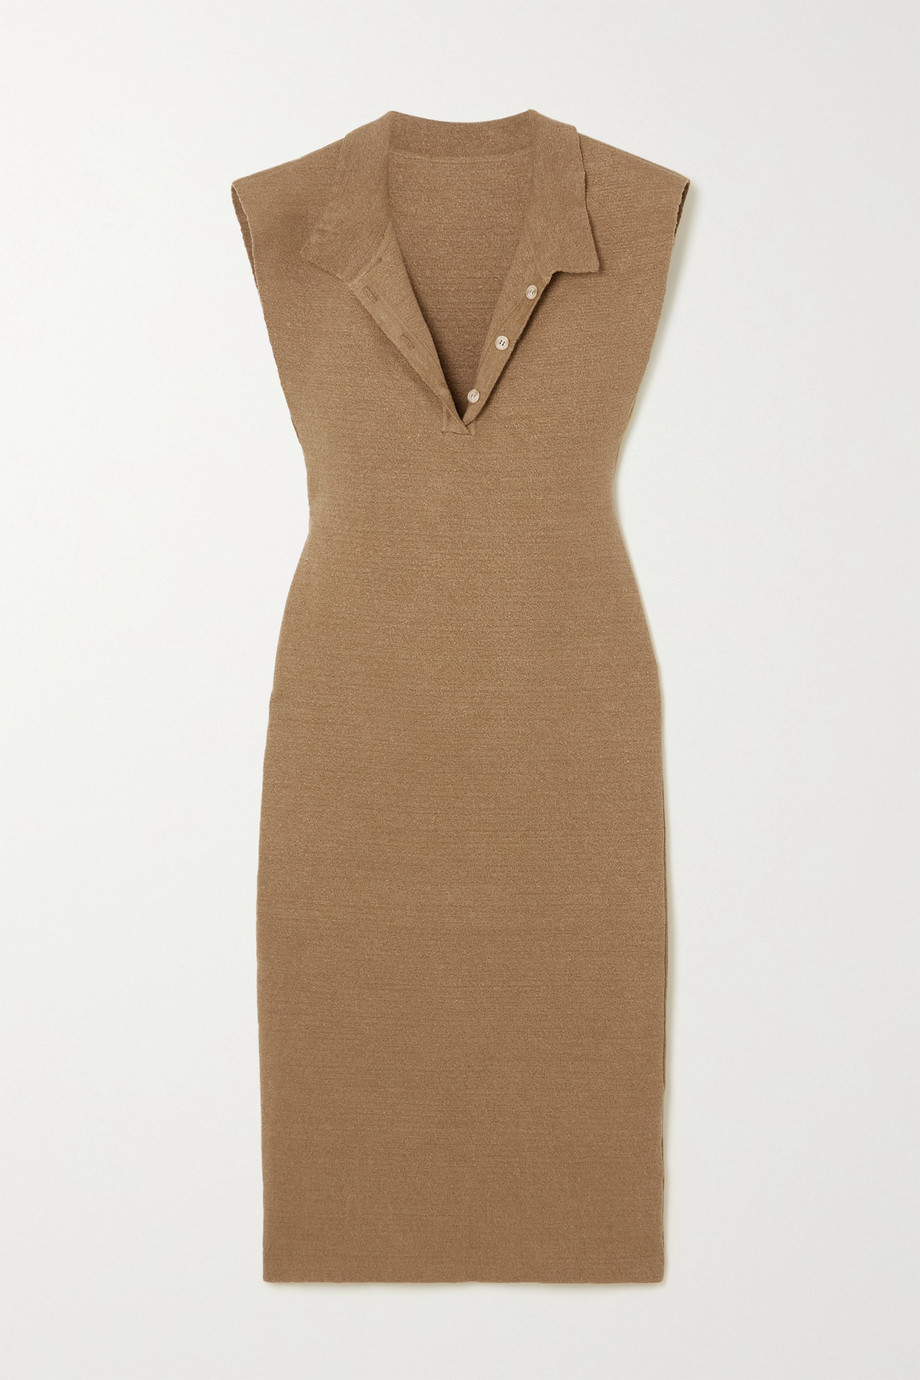 Jacquemus Santon linen dress